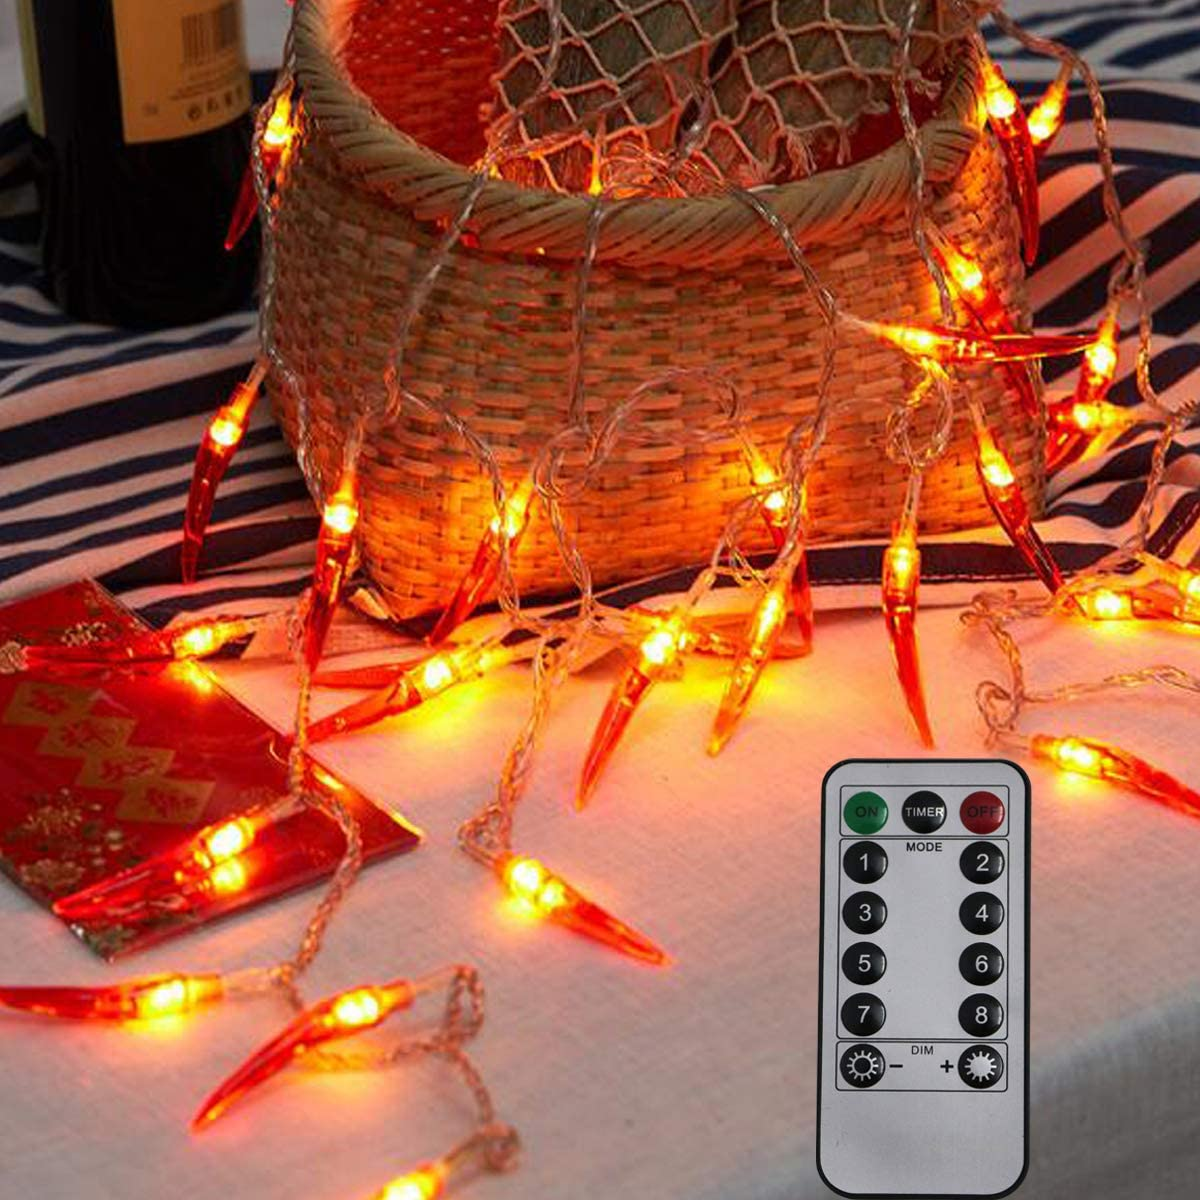 Dreamworth Red Chili String Lights,10ft 20 LED Chili String Lights Battery Operated Remote Contol Fairy Lights for Wedding, Chinese New Year,Spring Festival,Party Decoration,Christmas